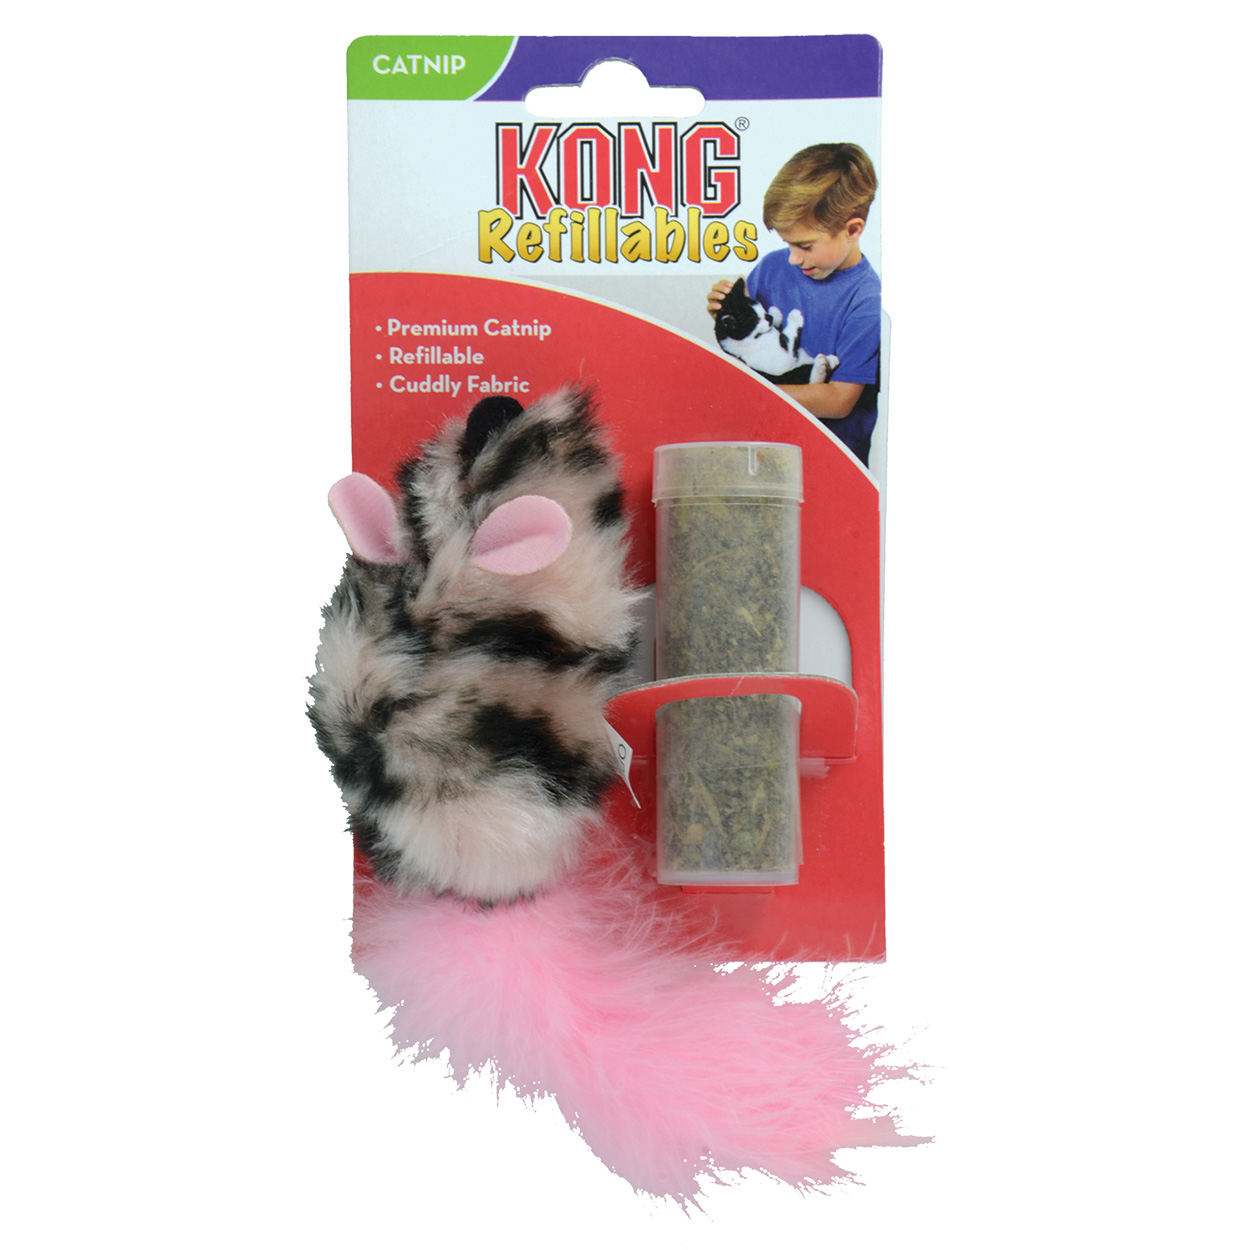 KONG Refillable Catnip Toy - Field Mouse 69575